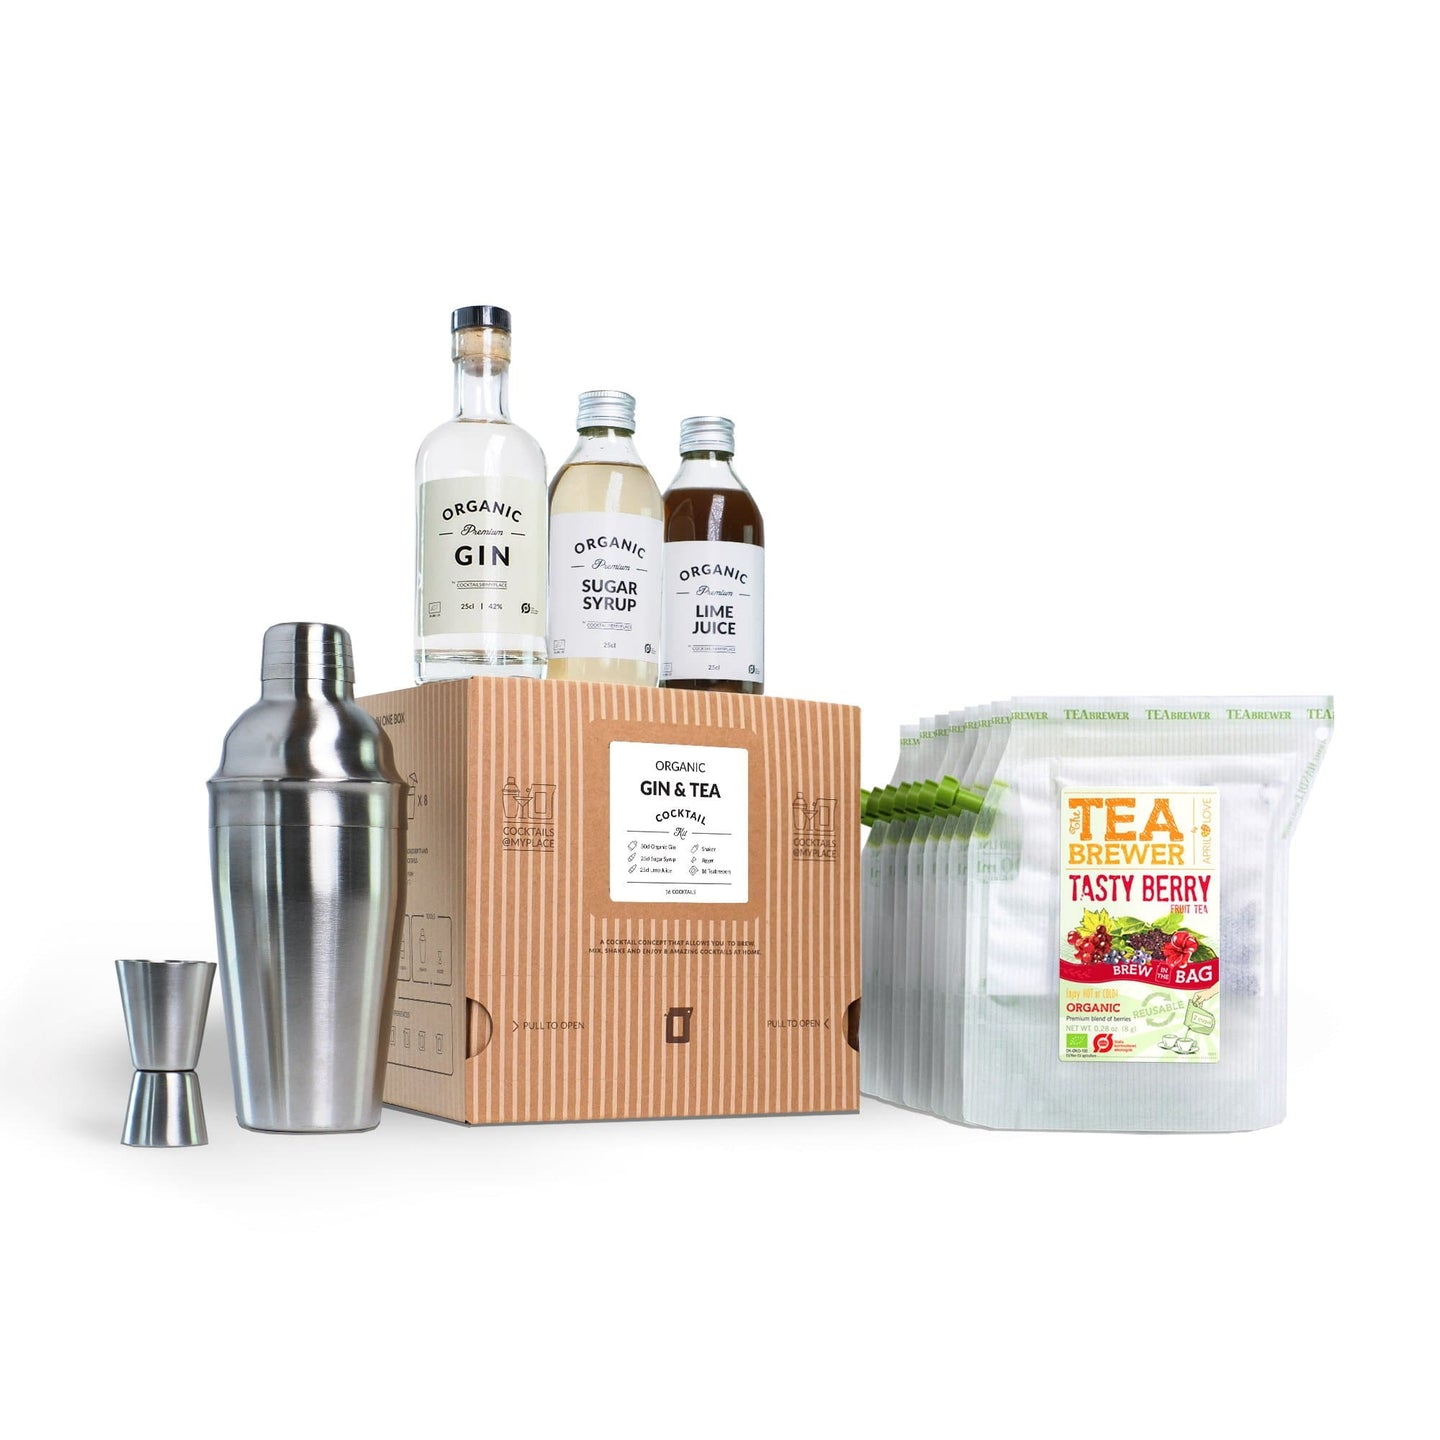 GIN & TEA Organic Cocktail Kit